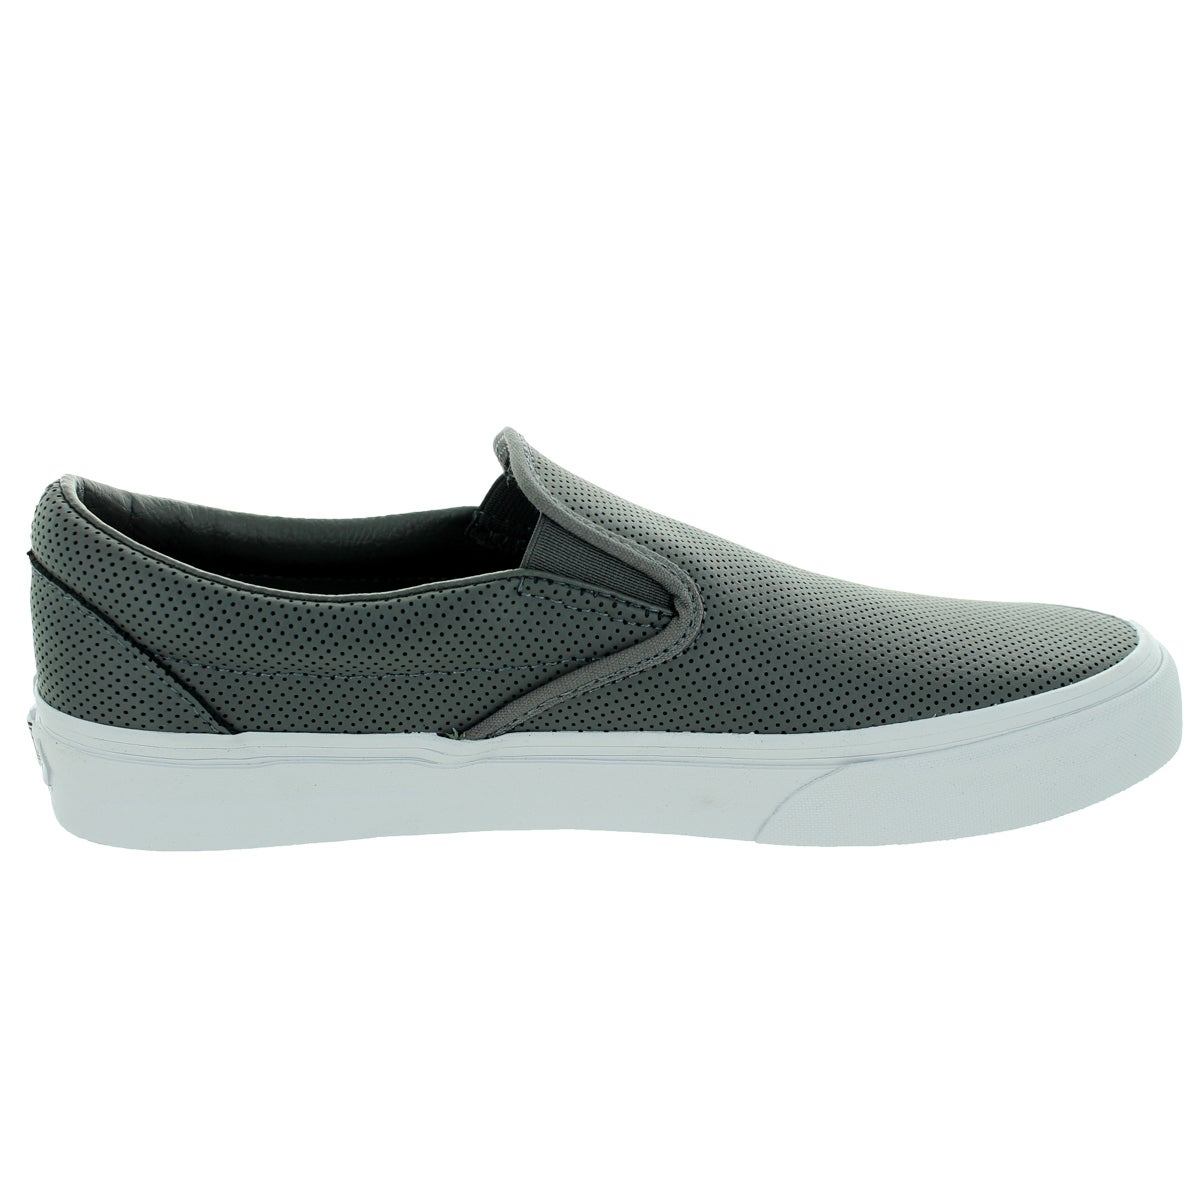 68111299e4 Shop Vans Unisex Classic Slip-On Perforated Leather Smoked Peark Skate Shoe  - Free Shipping Today - Overstock.com - 12136477